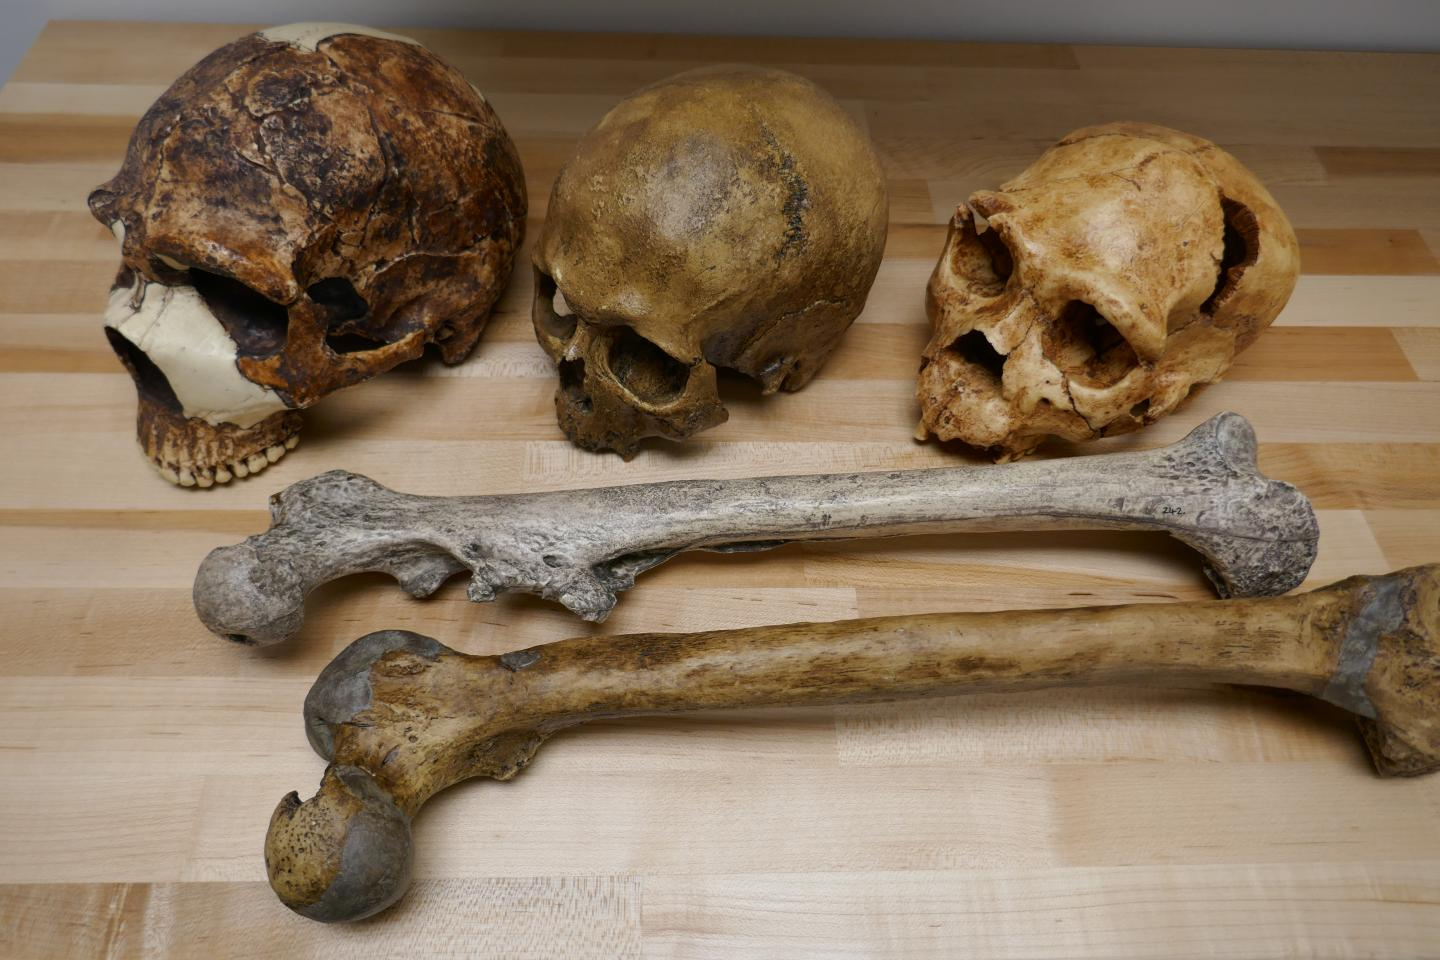 Human fossils illustrating the variation in brain (skulls) and body size (thigh bones) during the Pleistocene.